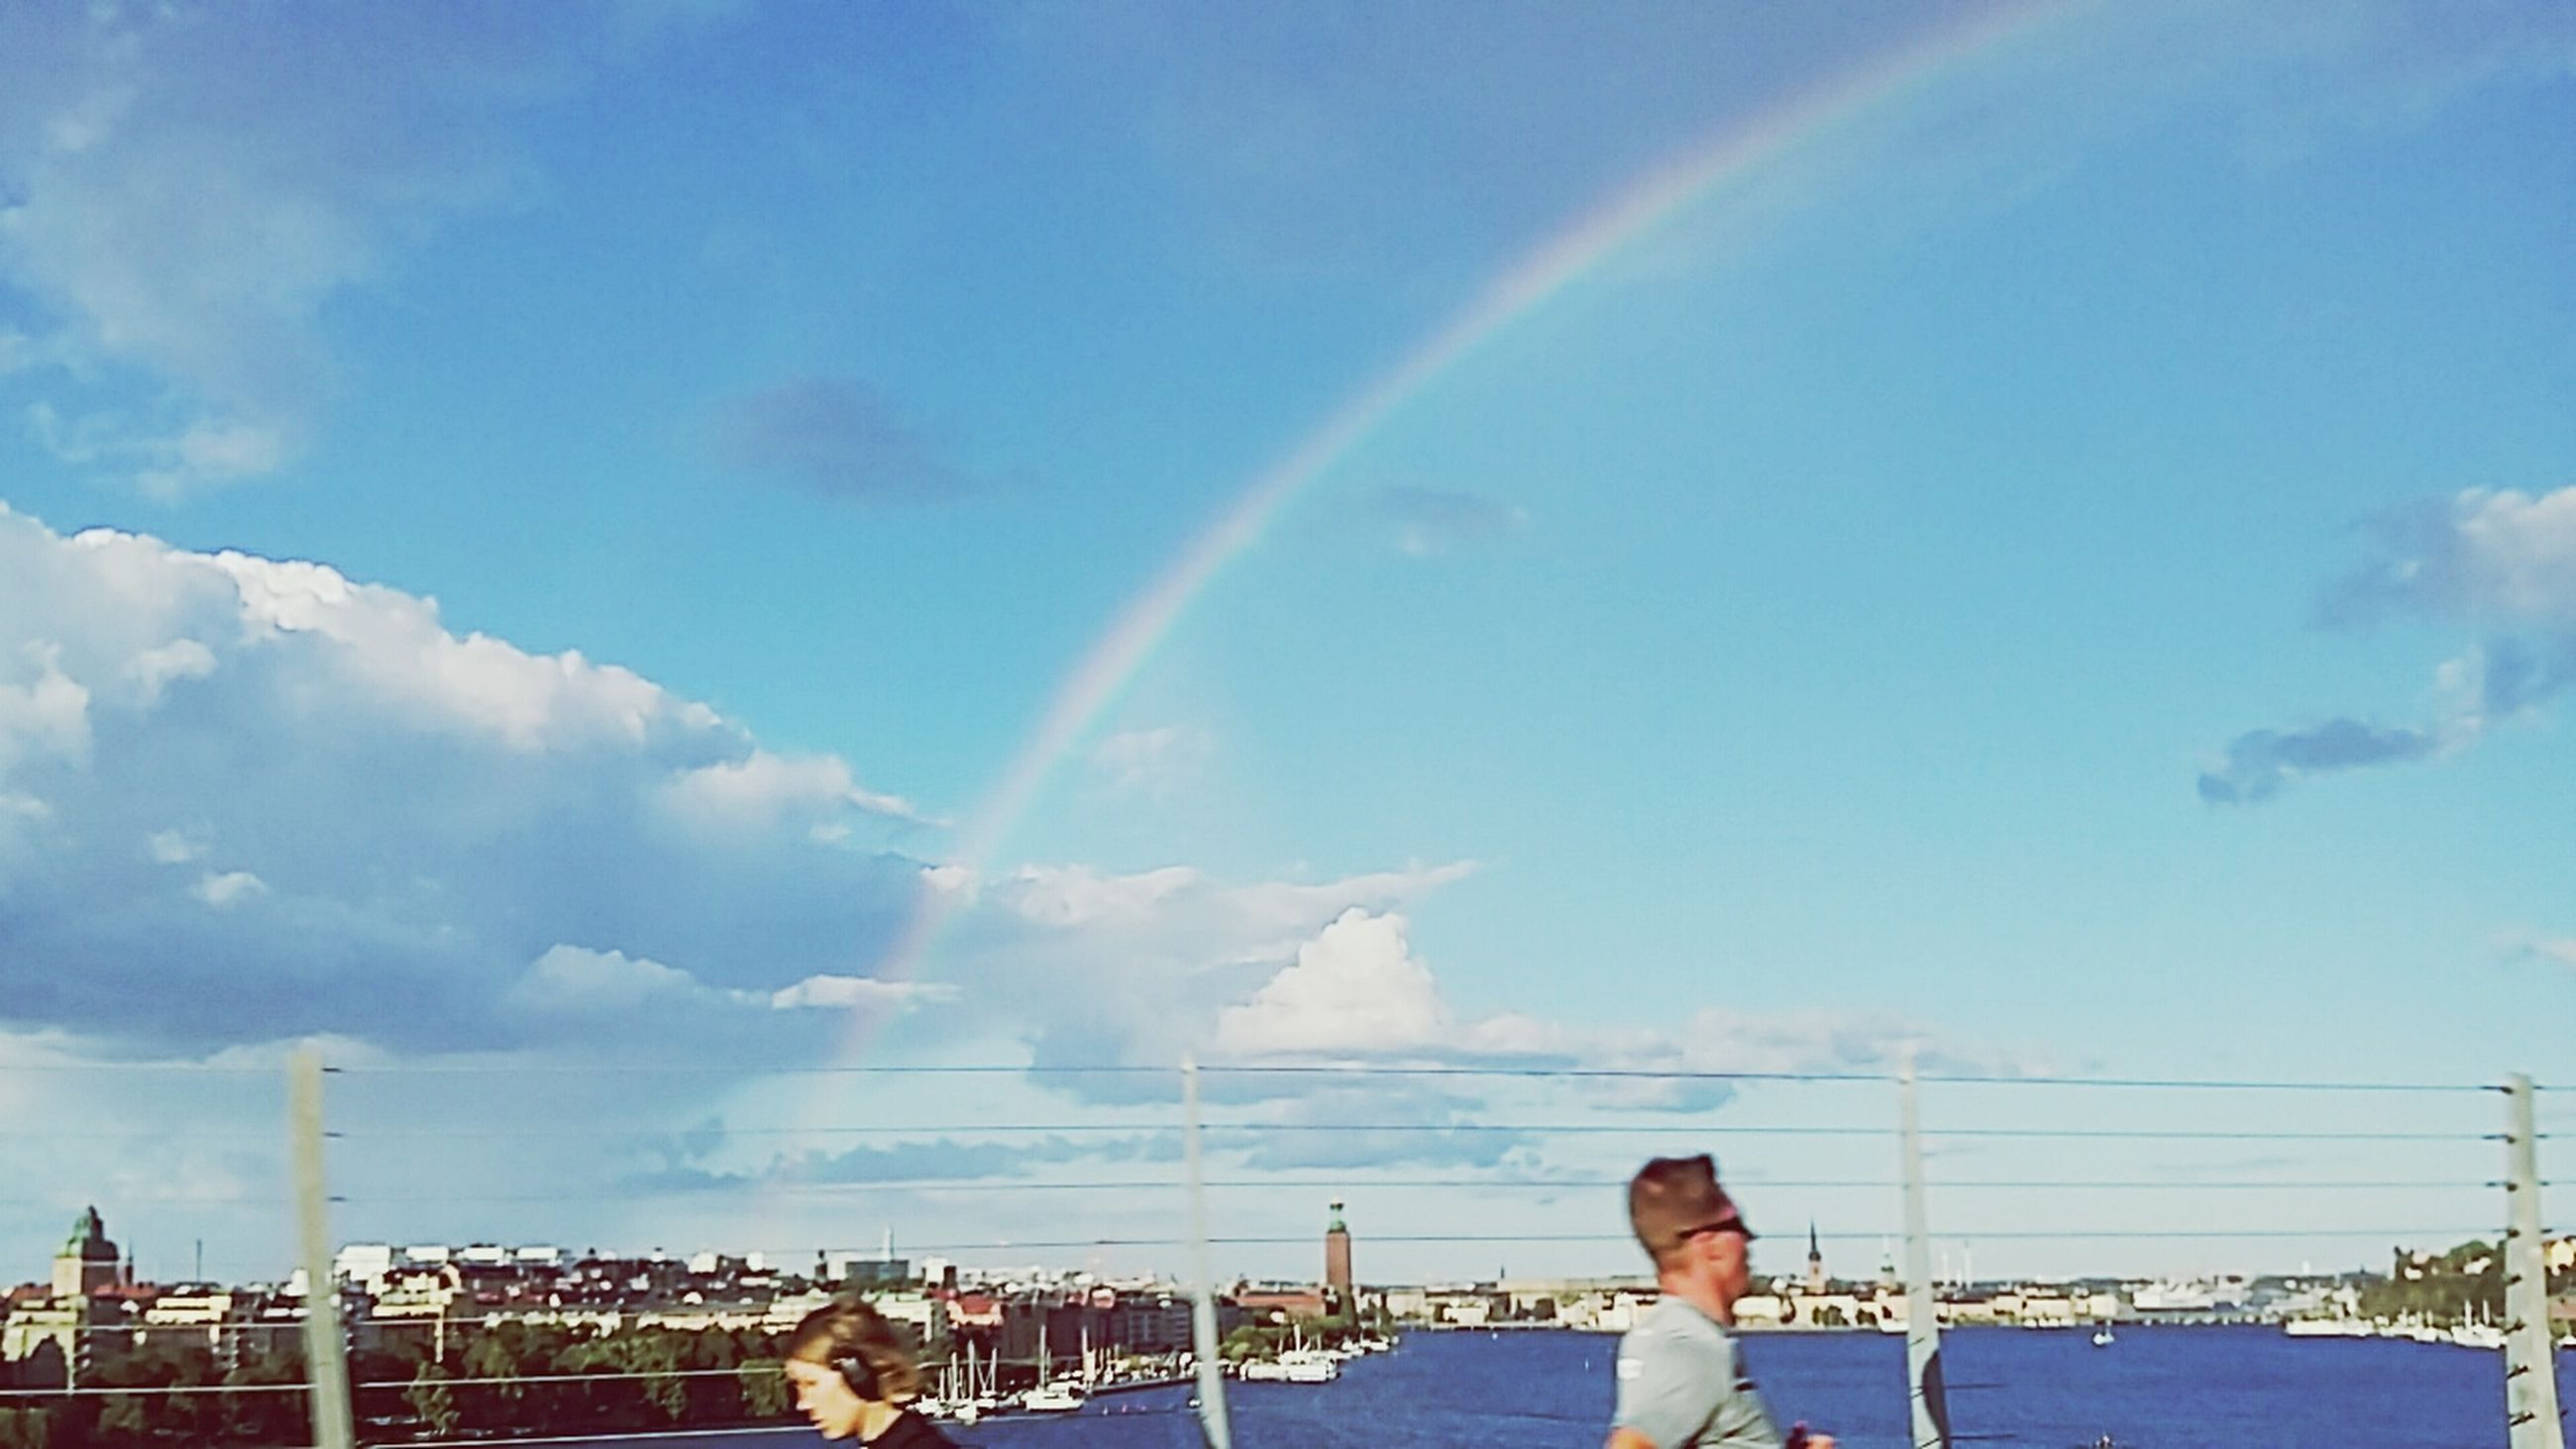 rainbow, building exterior, sky, multi colored, built structure, city, architecture, blue, cityscape, townscape, cloud - sky, day, cloud, town, residential district, housing settlement, development, beauty in nature, nature, outdoors, city life, ocean